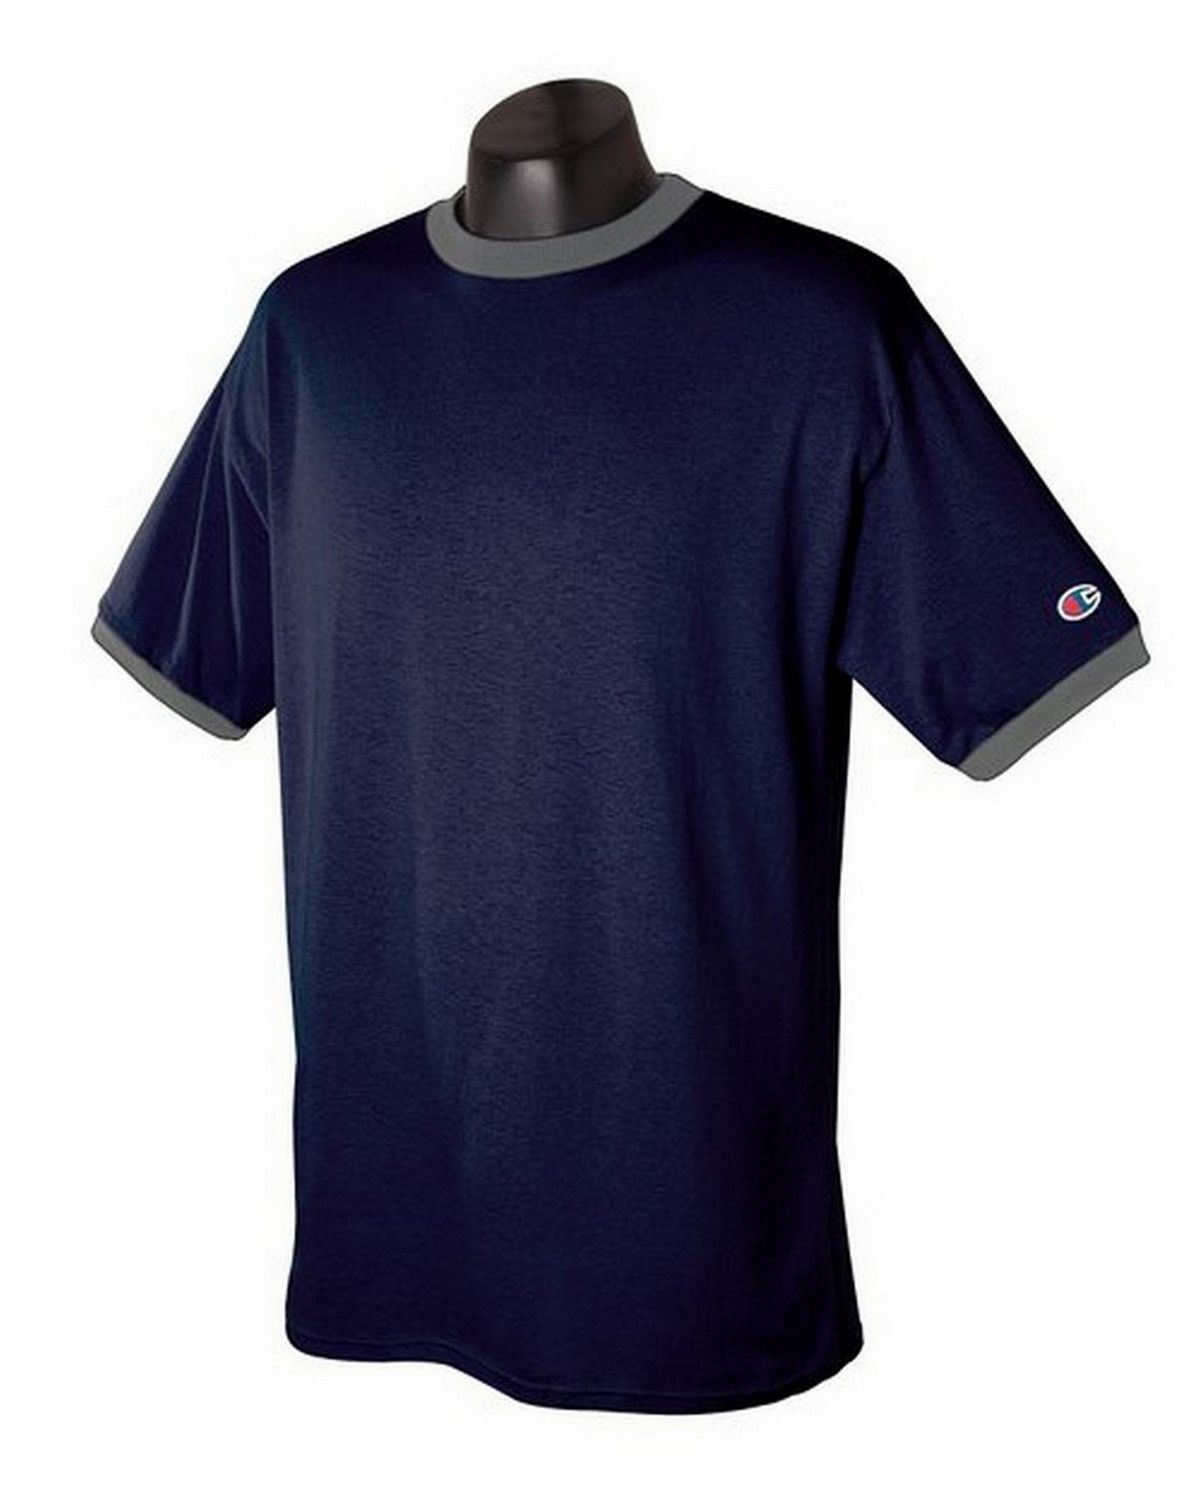 Champion T136 Ringer T-Shirt - Navy/Oxford Gray - XL T136